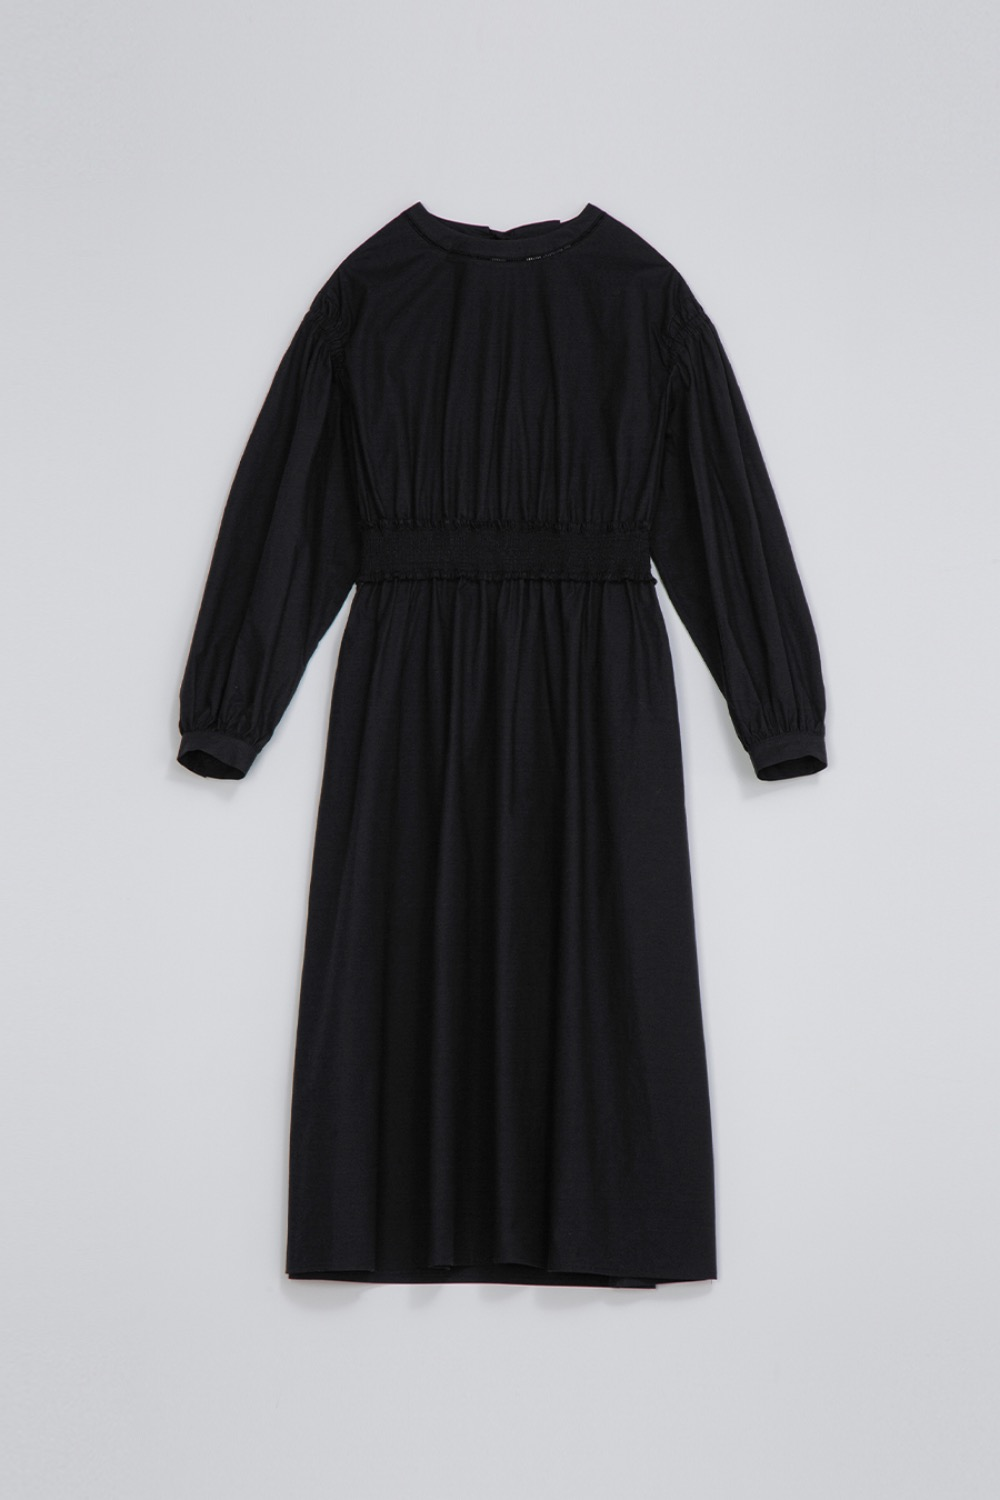 BONHEUR SMOCK DRESS -  BLACK COTTON